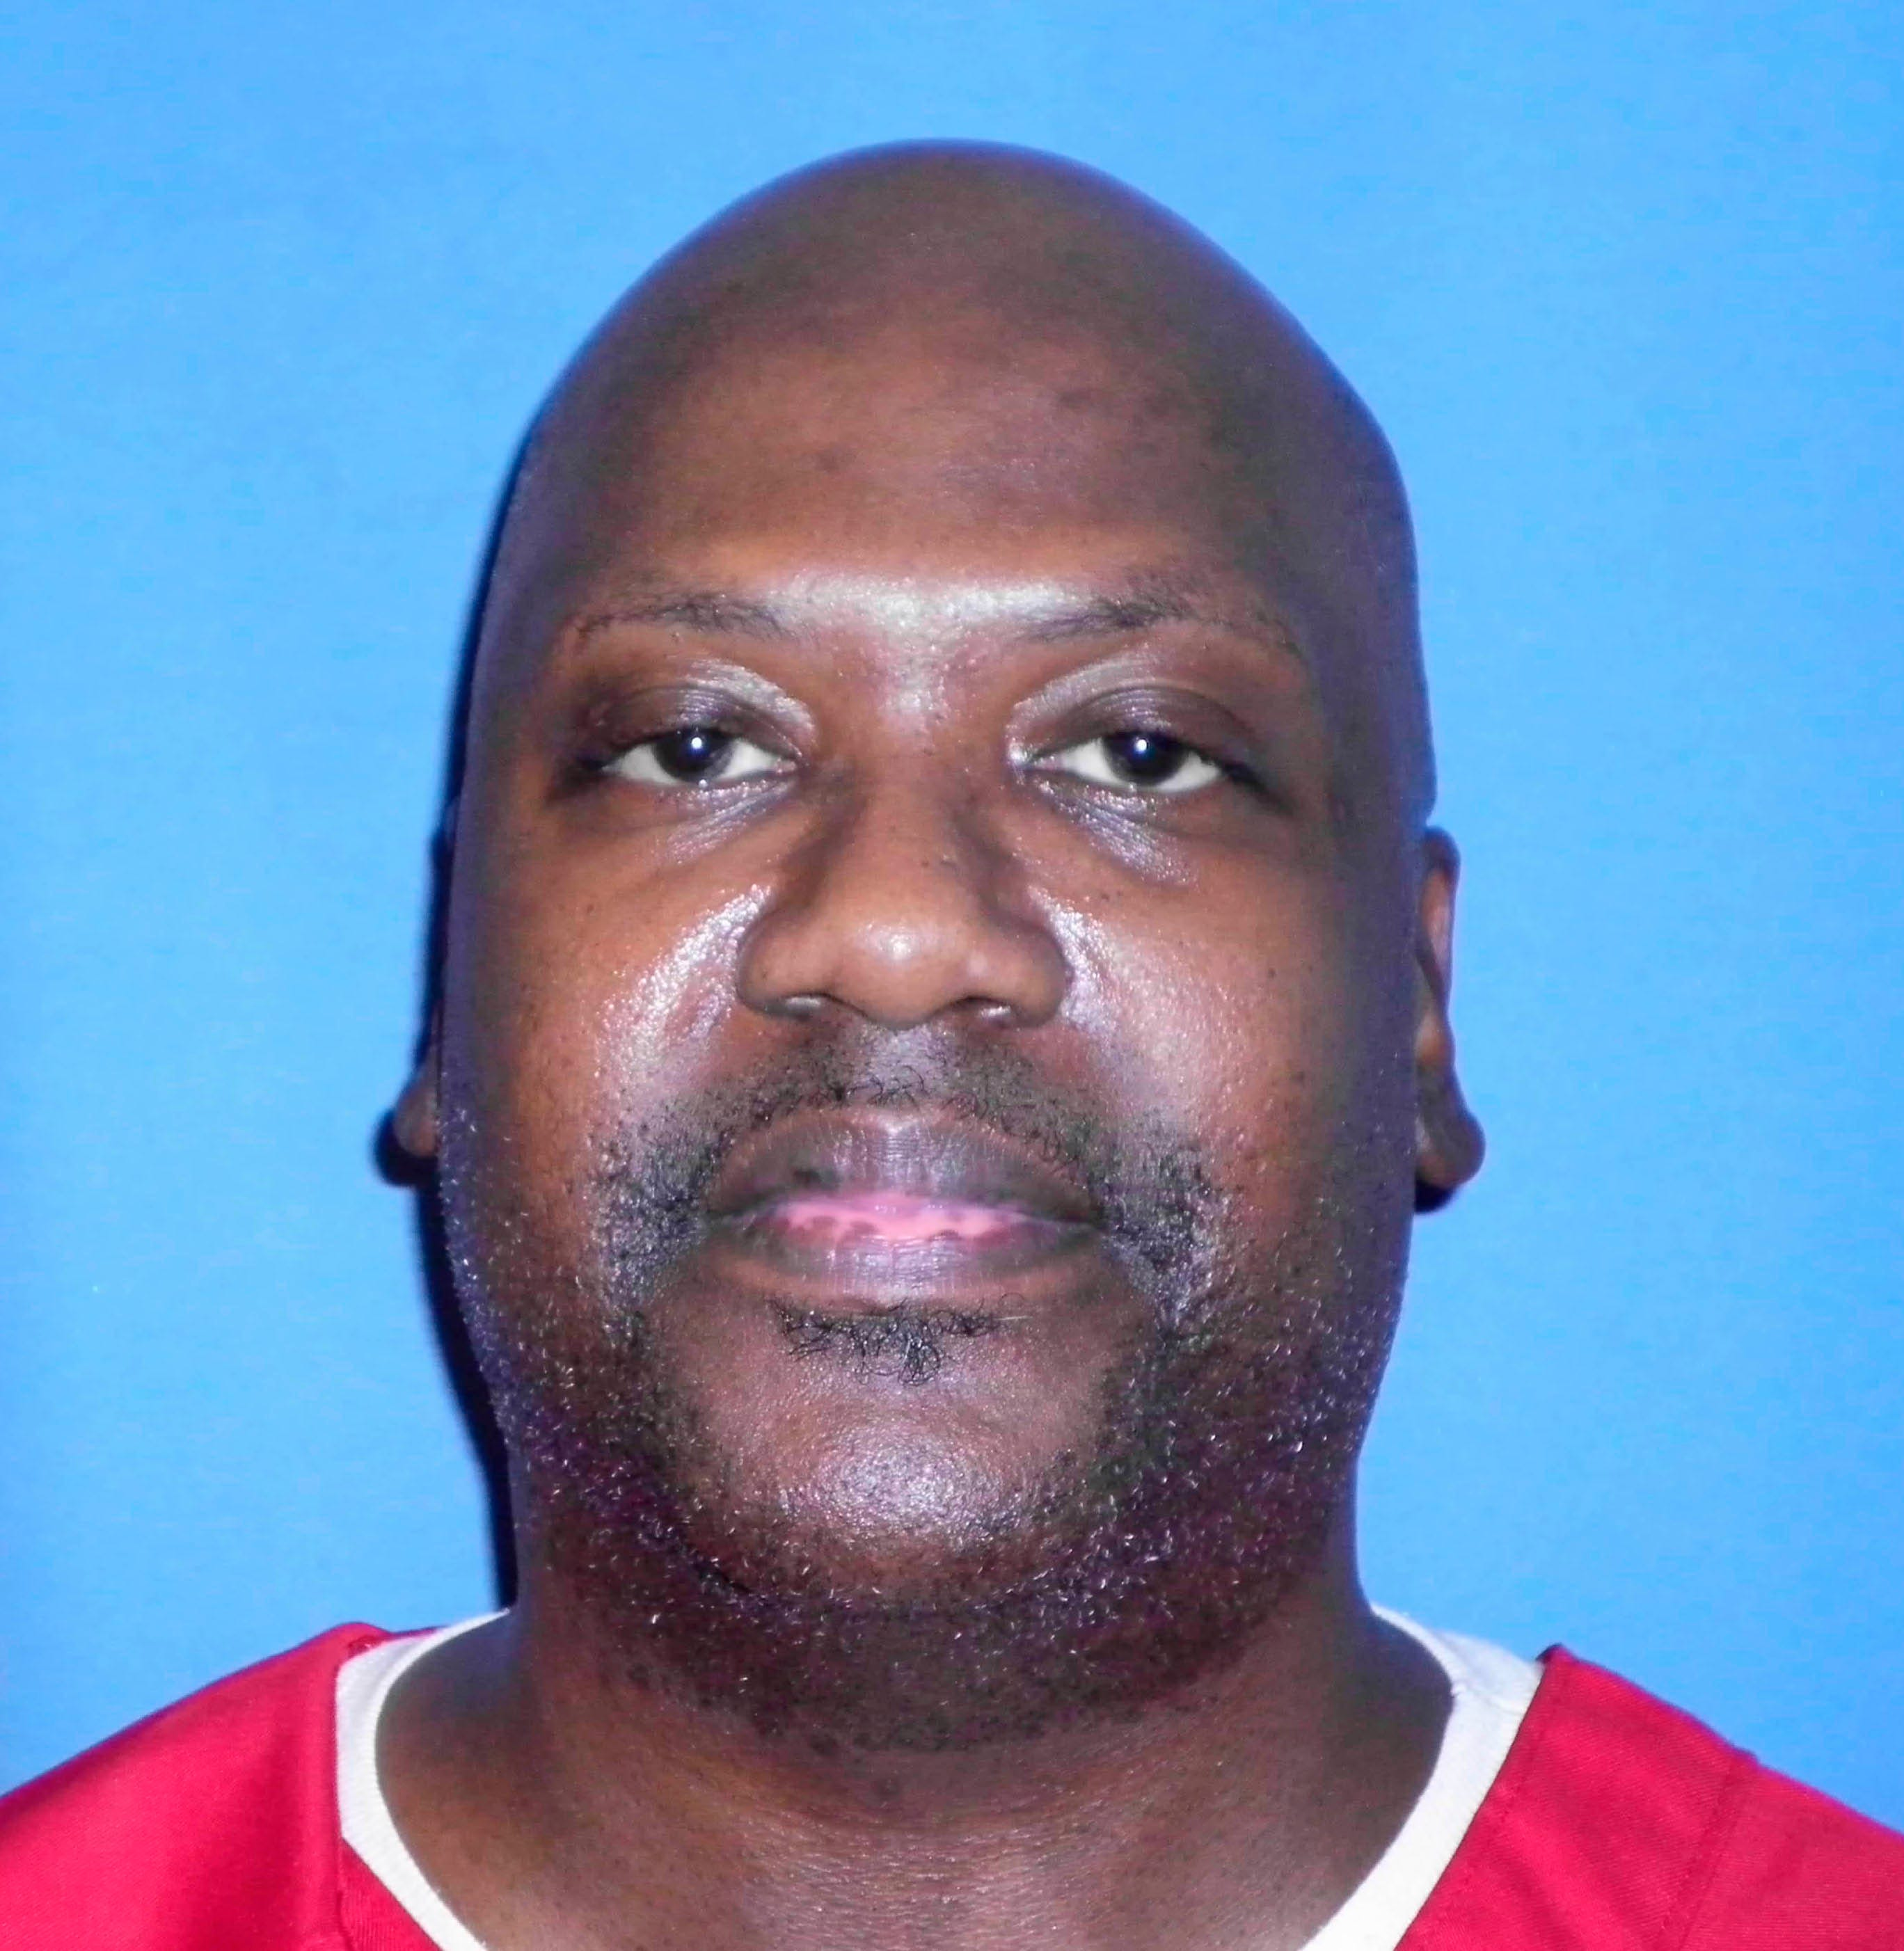 Six trials for same murders: Supreme Court frowns on racial jury selection tactics of Mississippi prosecutor